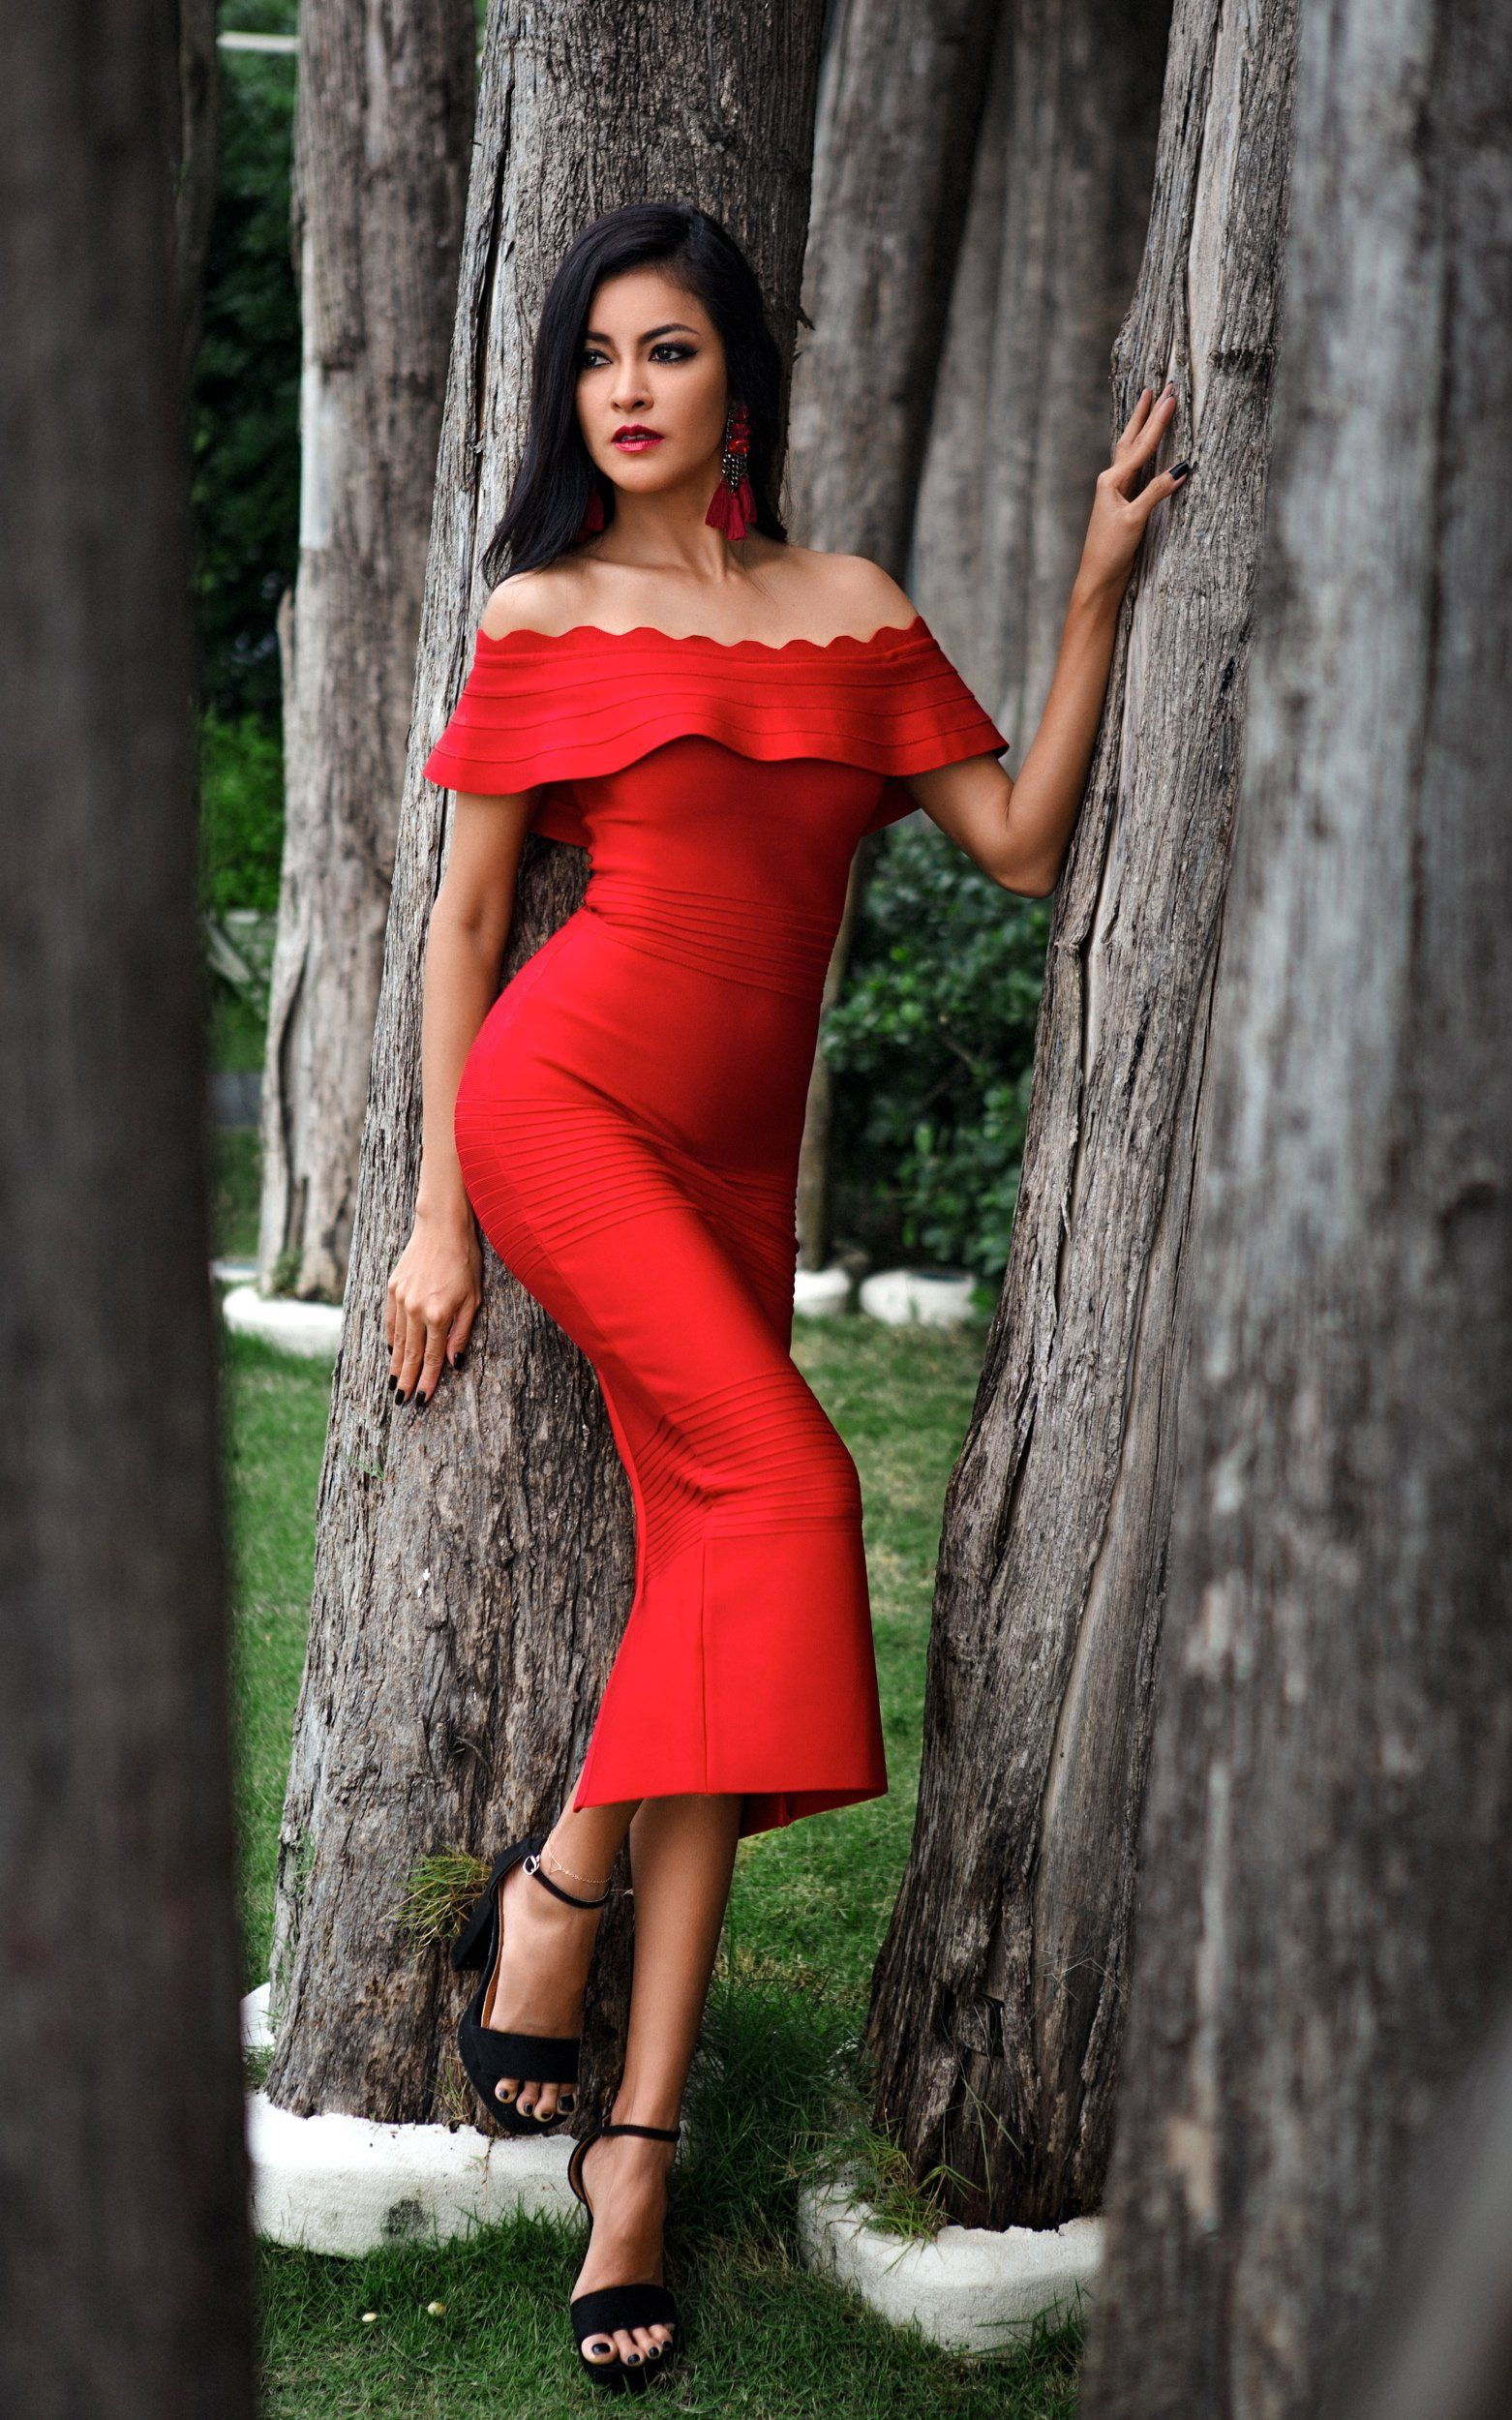 Red outfit Pinterest with evening gown, party dress